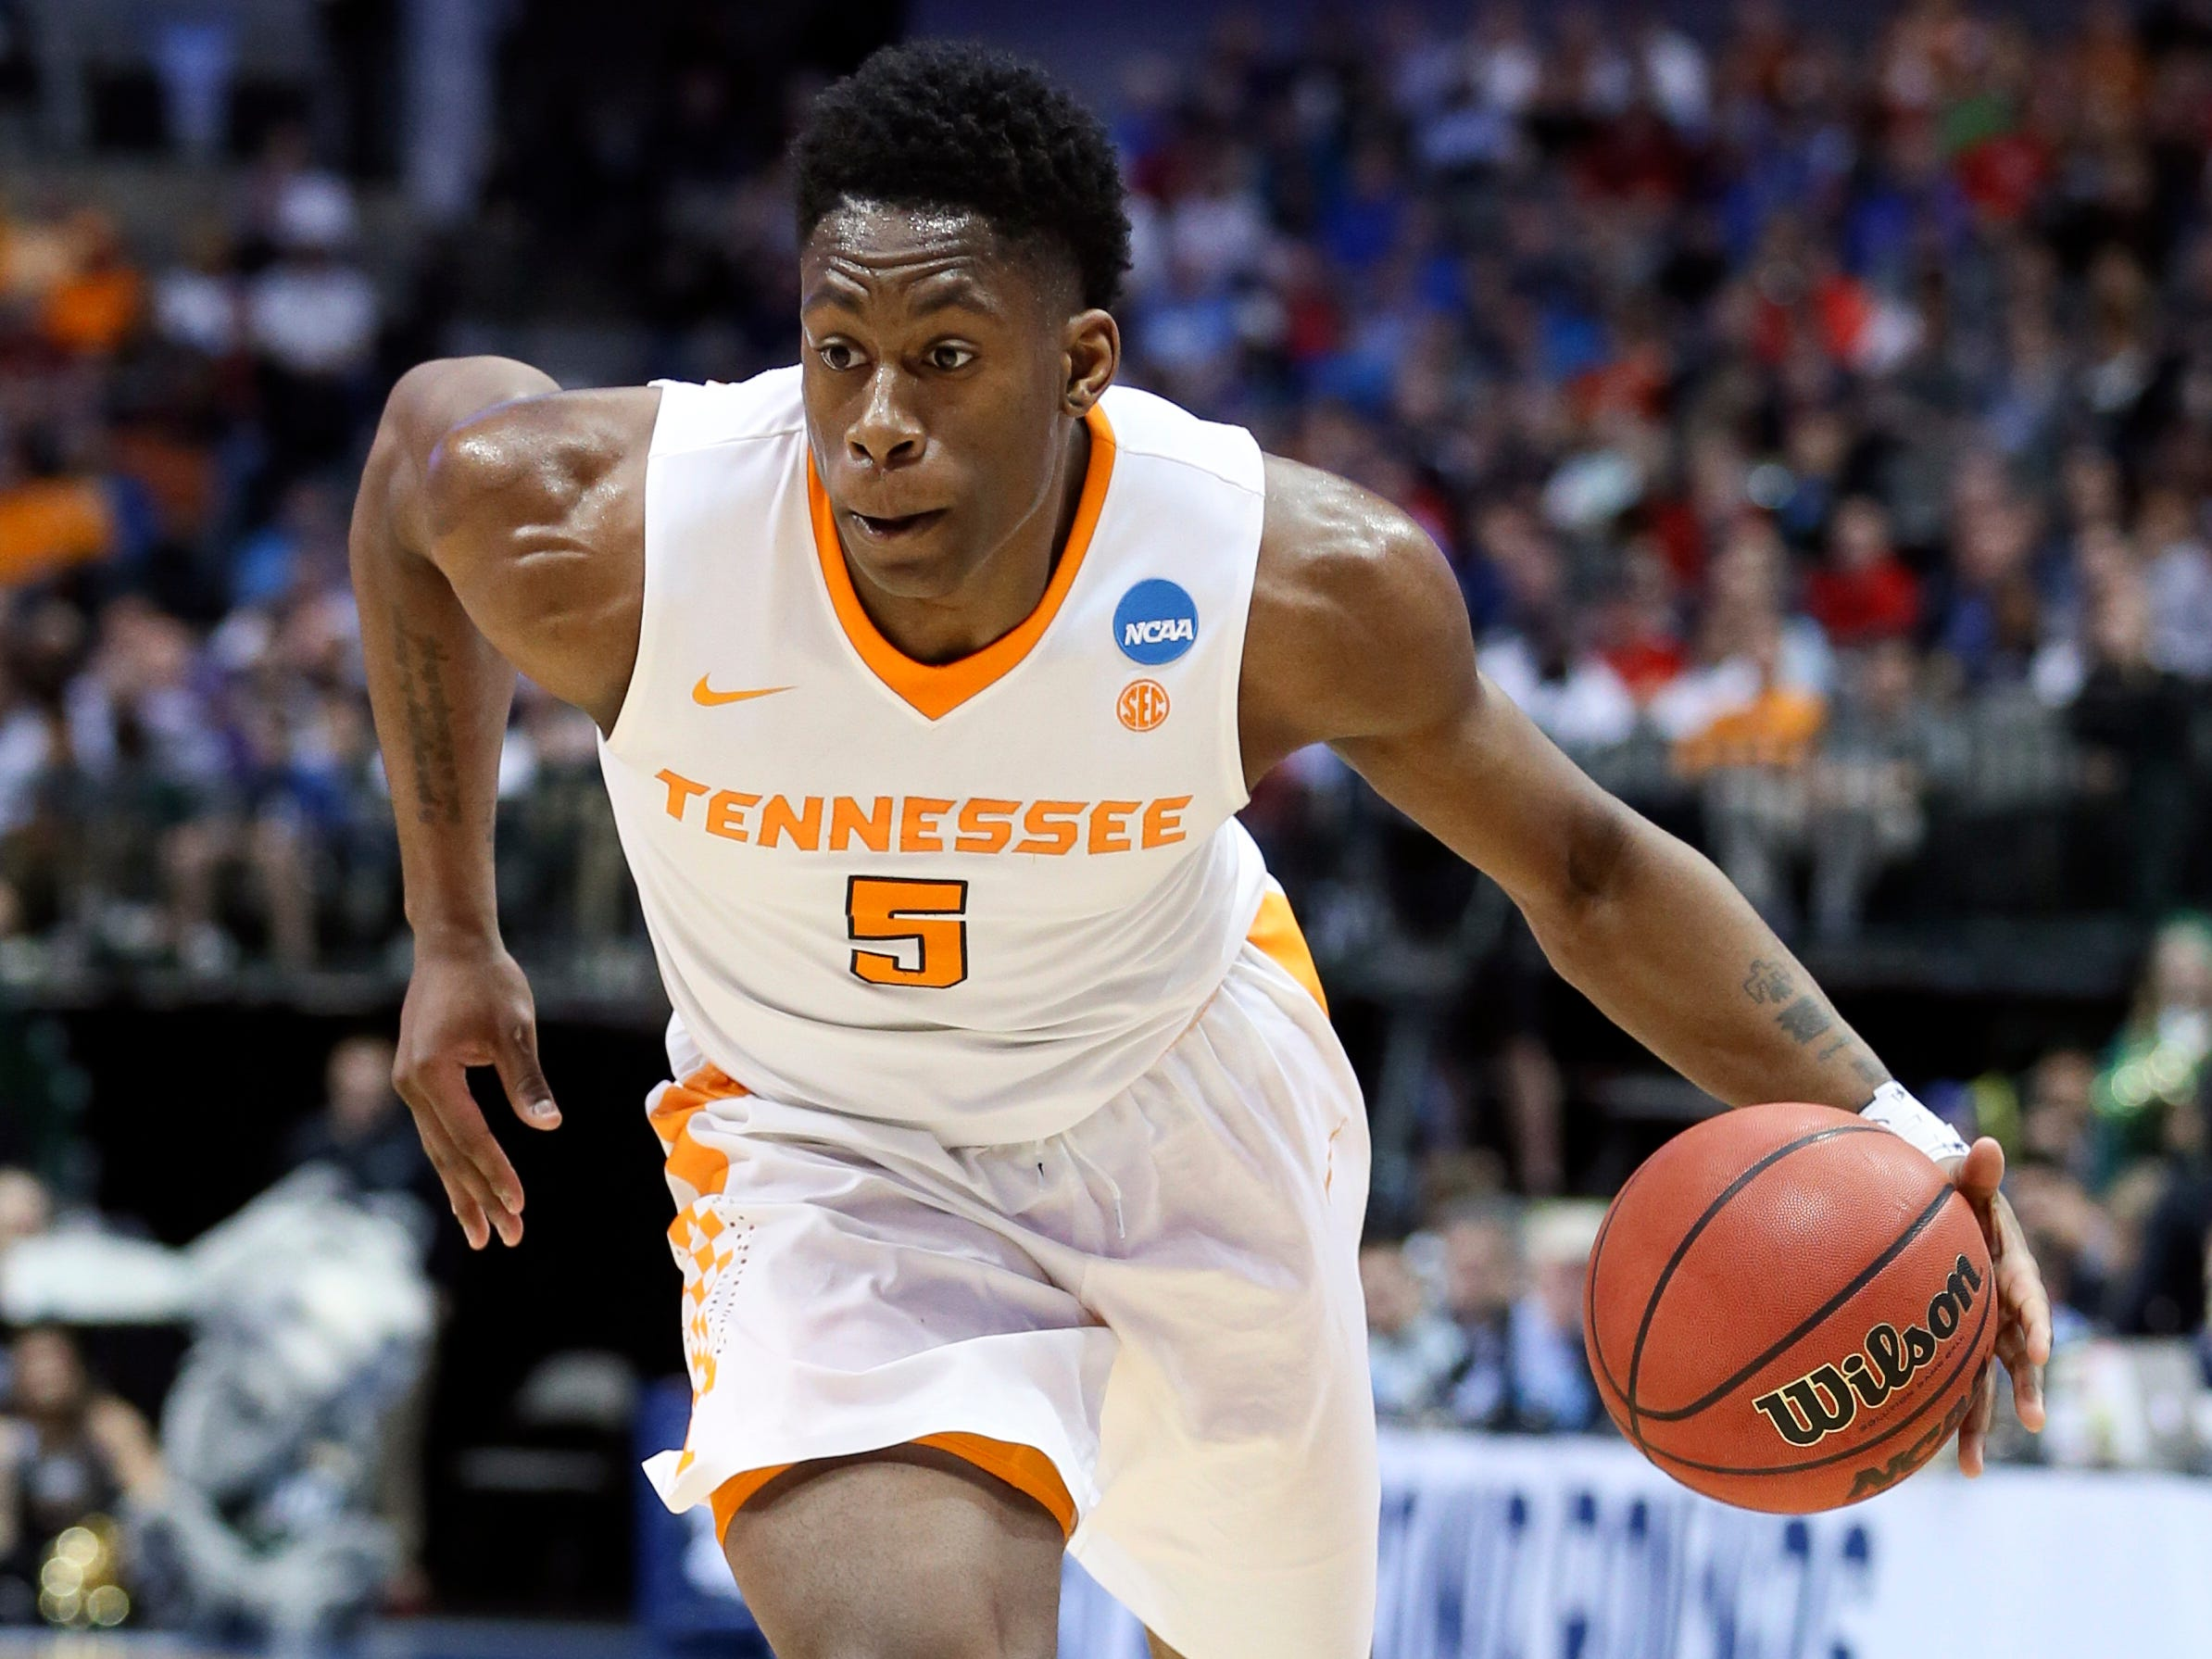 No. 6 Tennessee (26-9 in 2017-18).